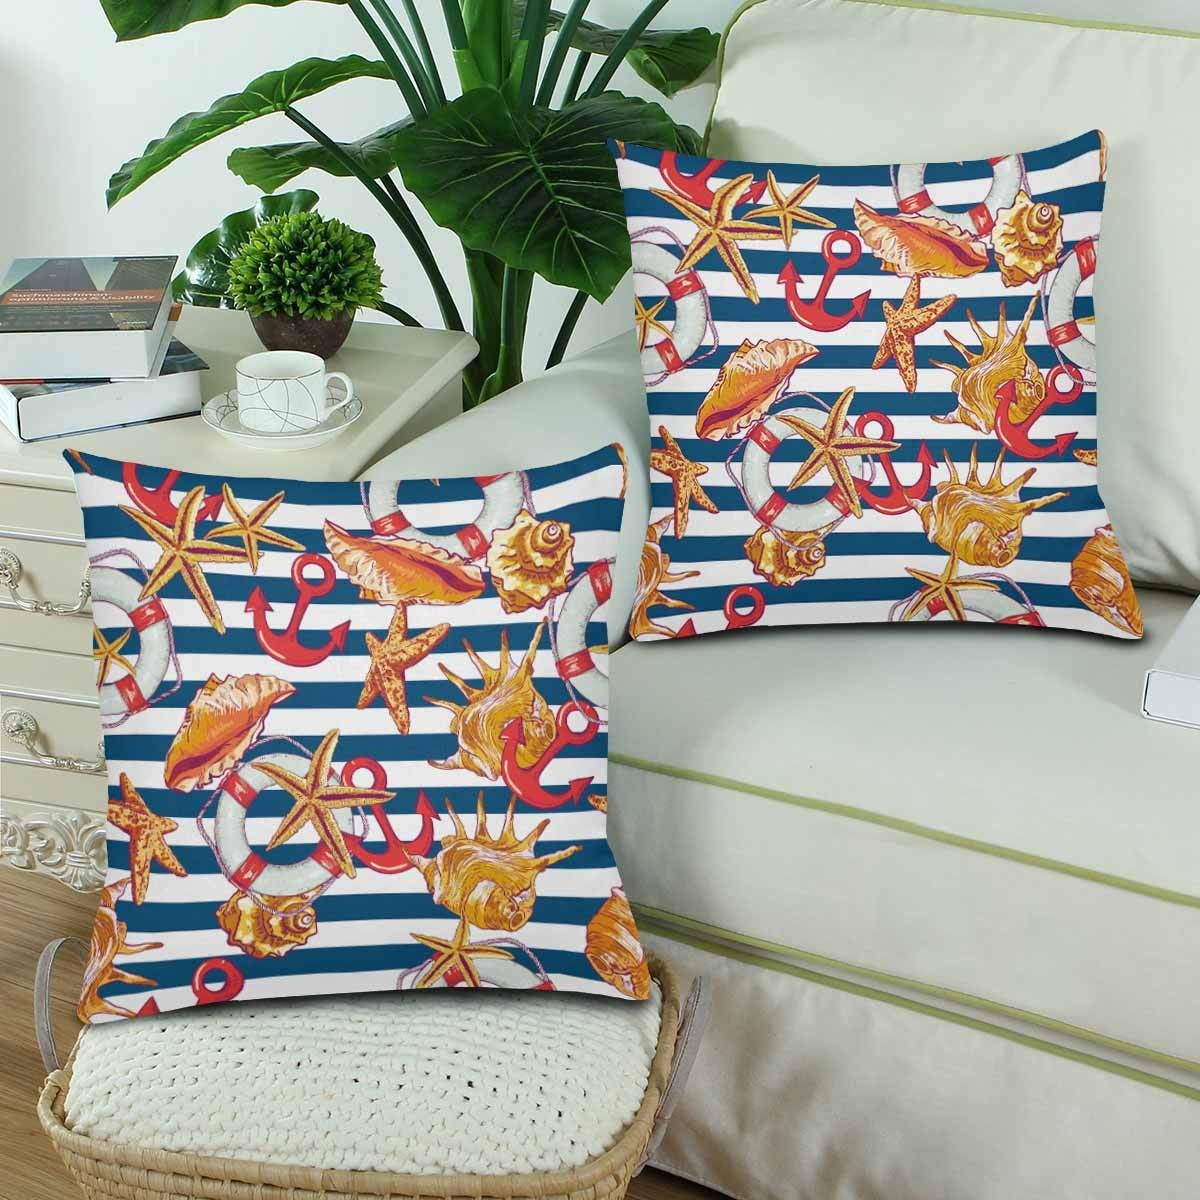 GCKG Summer Sea Shell Anchor Lifeline Blue Striped Pillowcase Throw Pillow Covers 18x18 inches Set of 2 - image 2 of 3